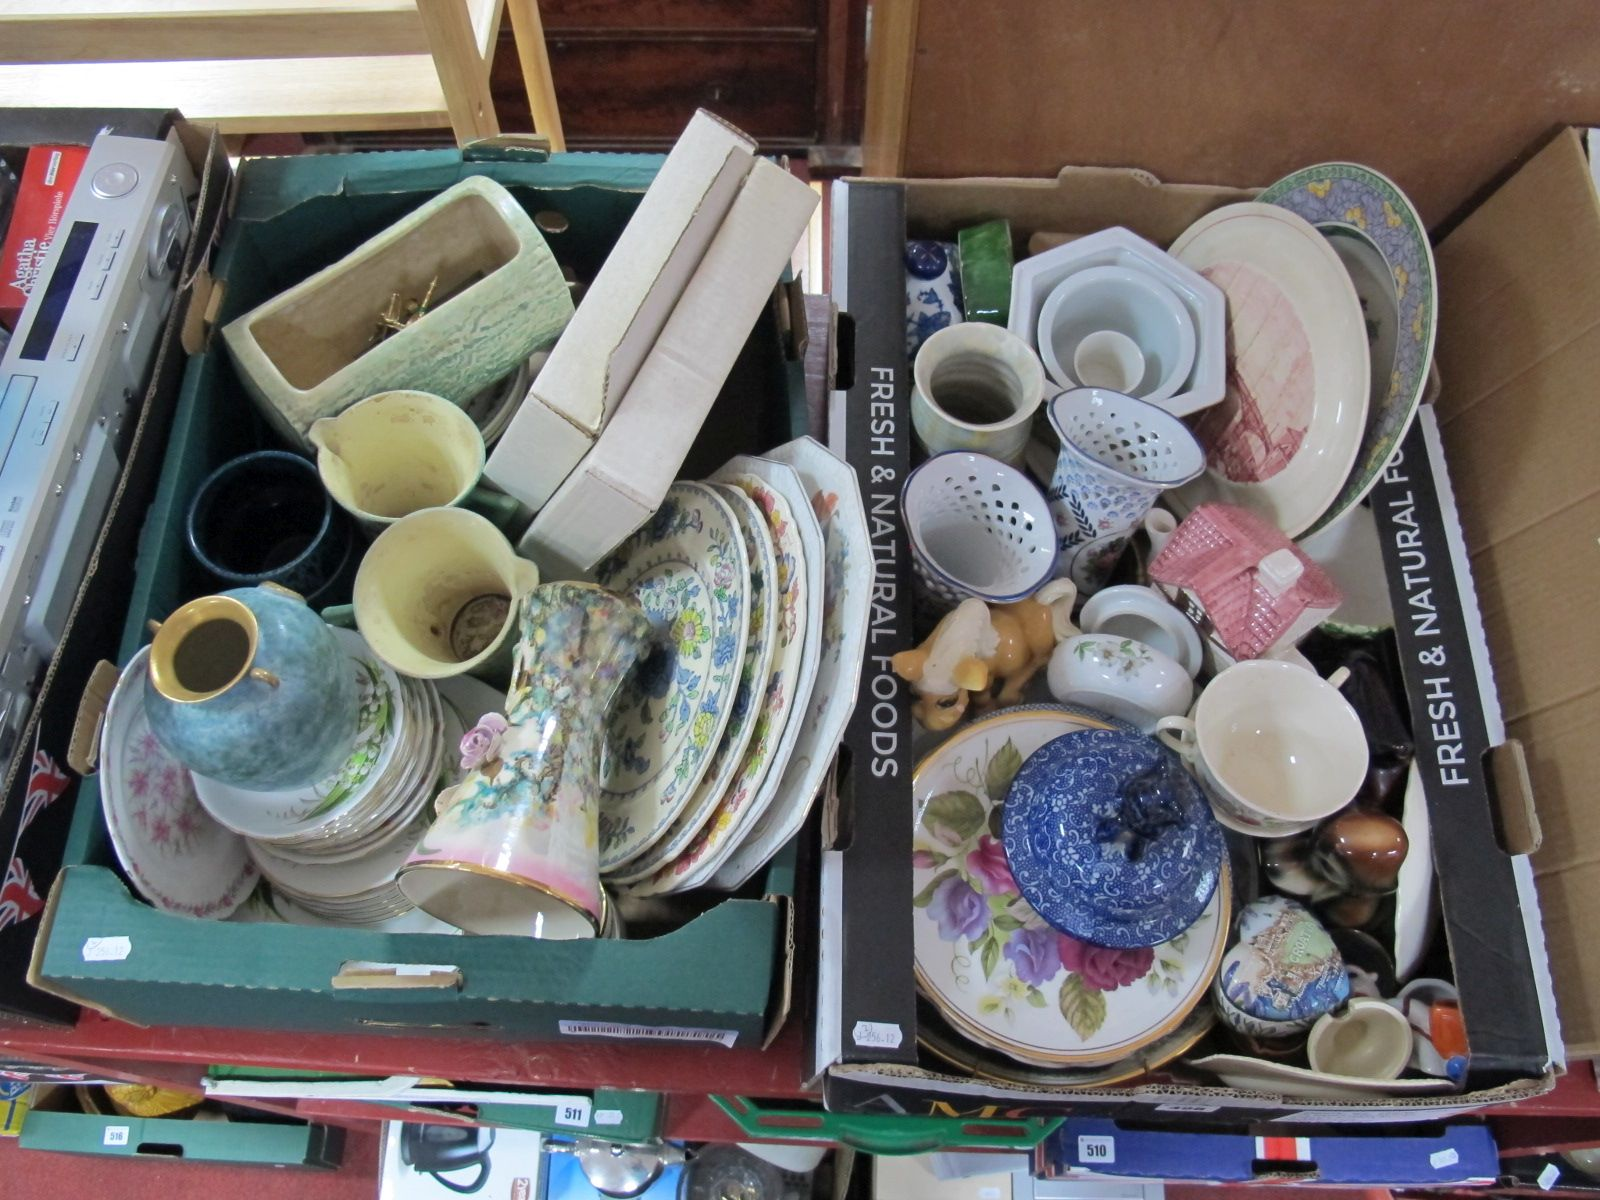 Lot 498 - Mason's Ware Plates, Adderley Ware saucers and plates, Royal Doulton cabinet plates, etc.